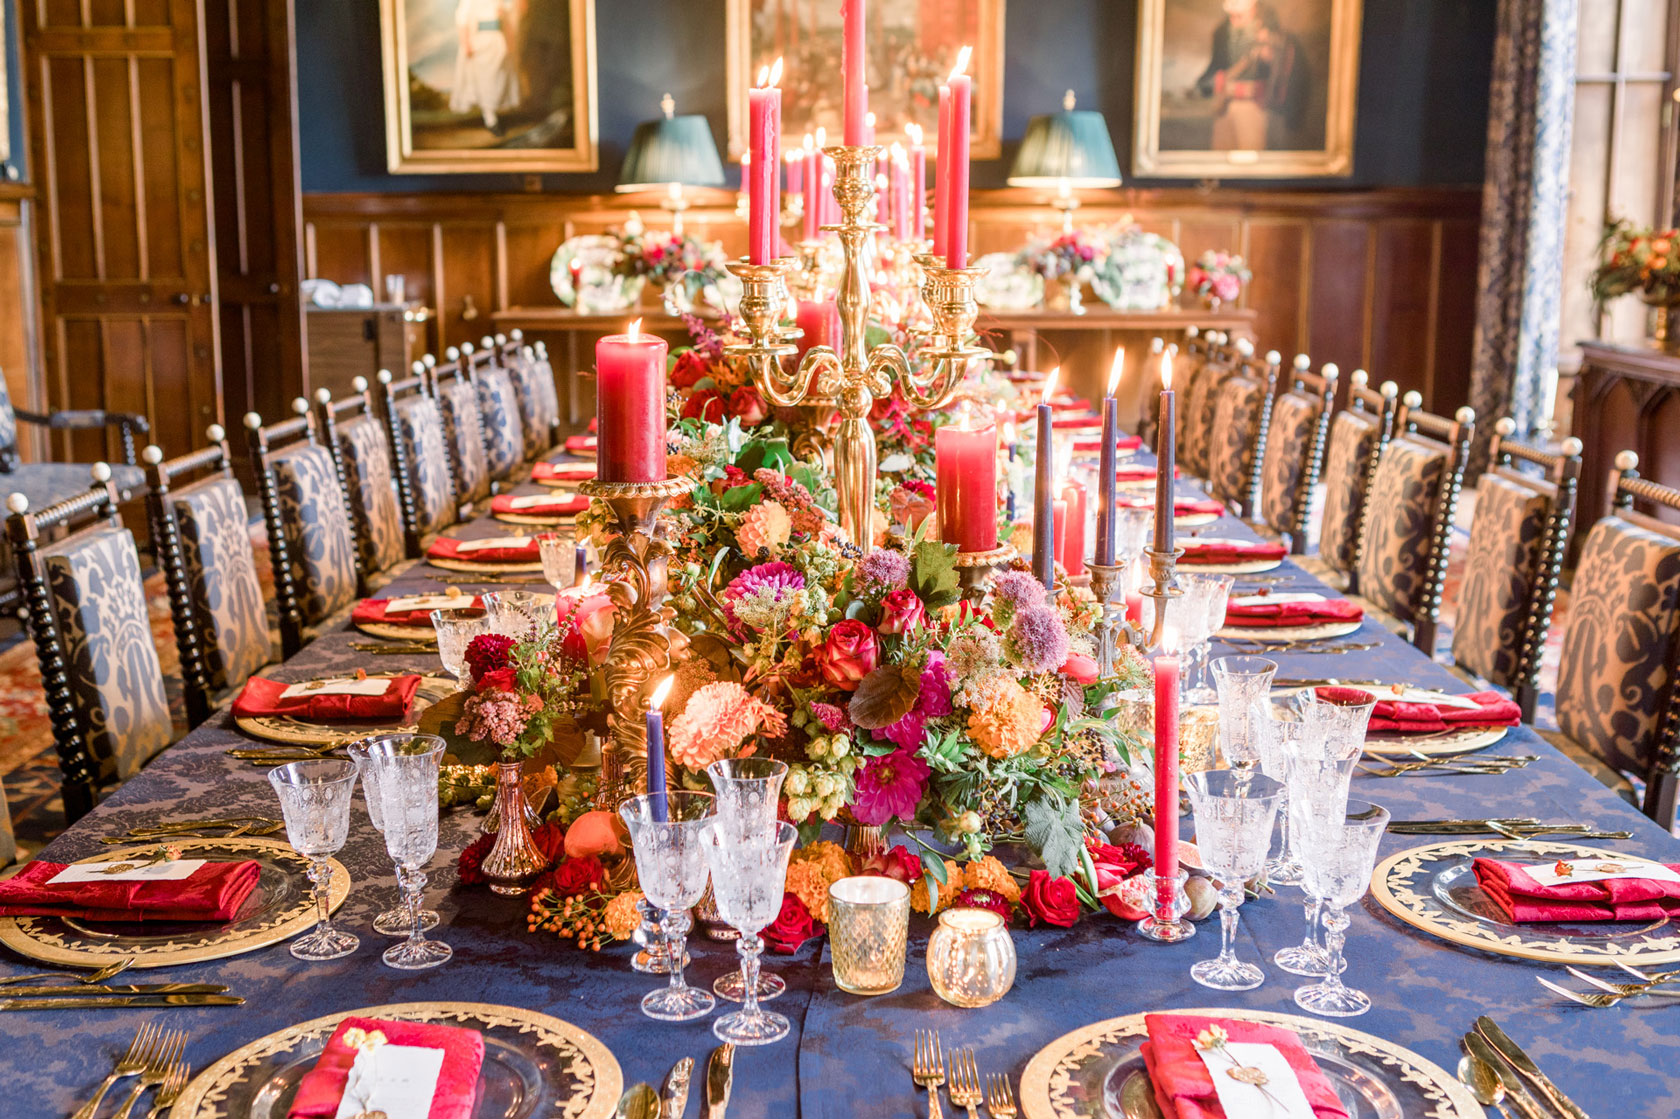 a long table regal inspired wedding brekfast table in a castle with navy linen, gold charger plates and cutlery, gold candelabras with red candles